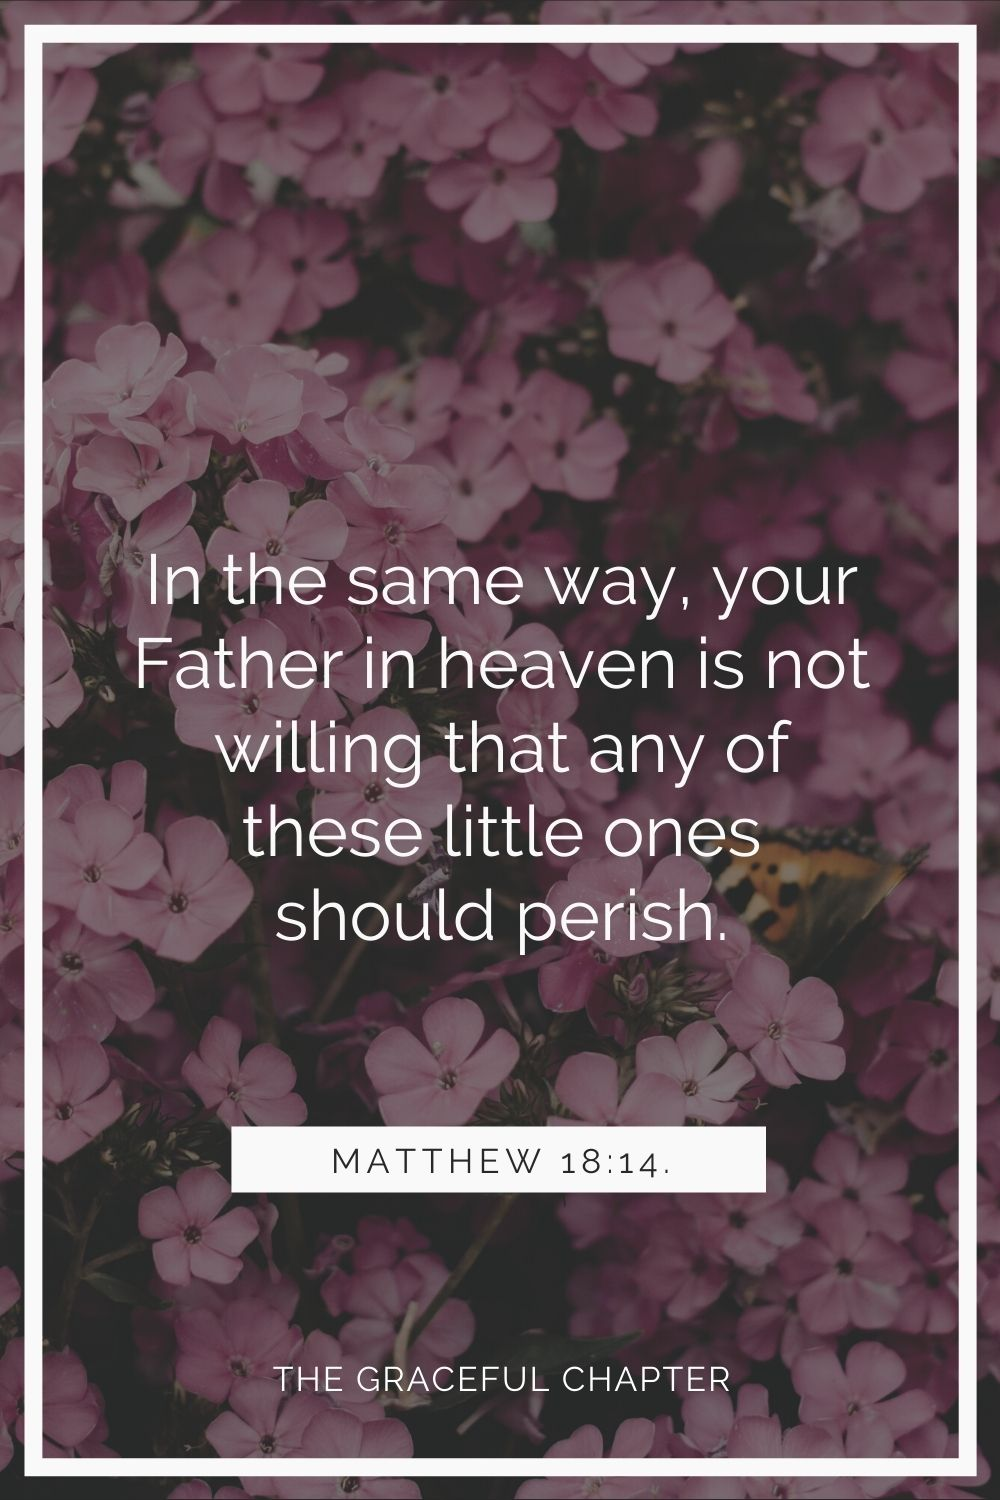 In the same way your Father in heaven is not willing that any of these little ones should perish Matthew 18:14.